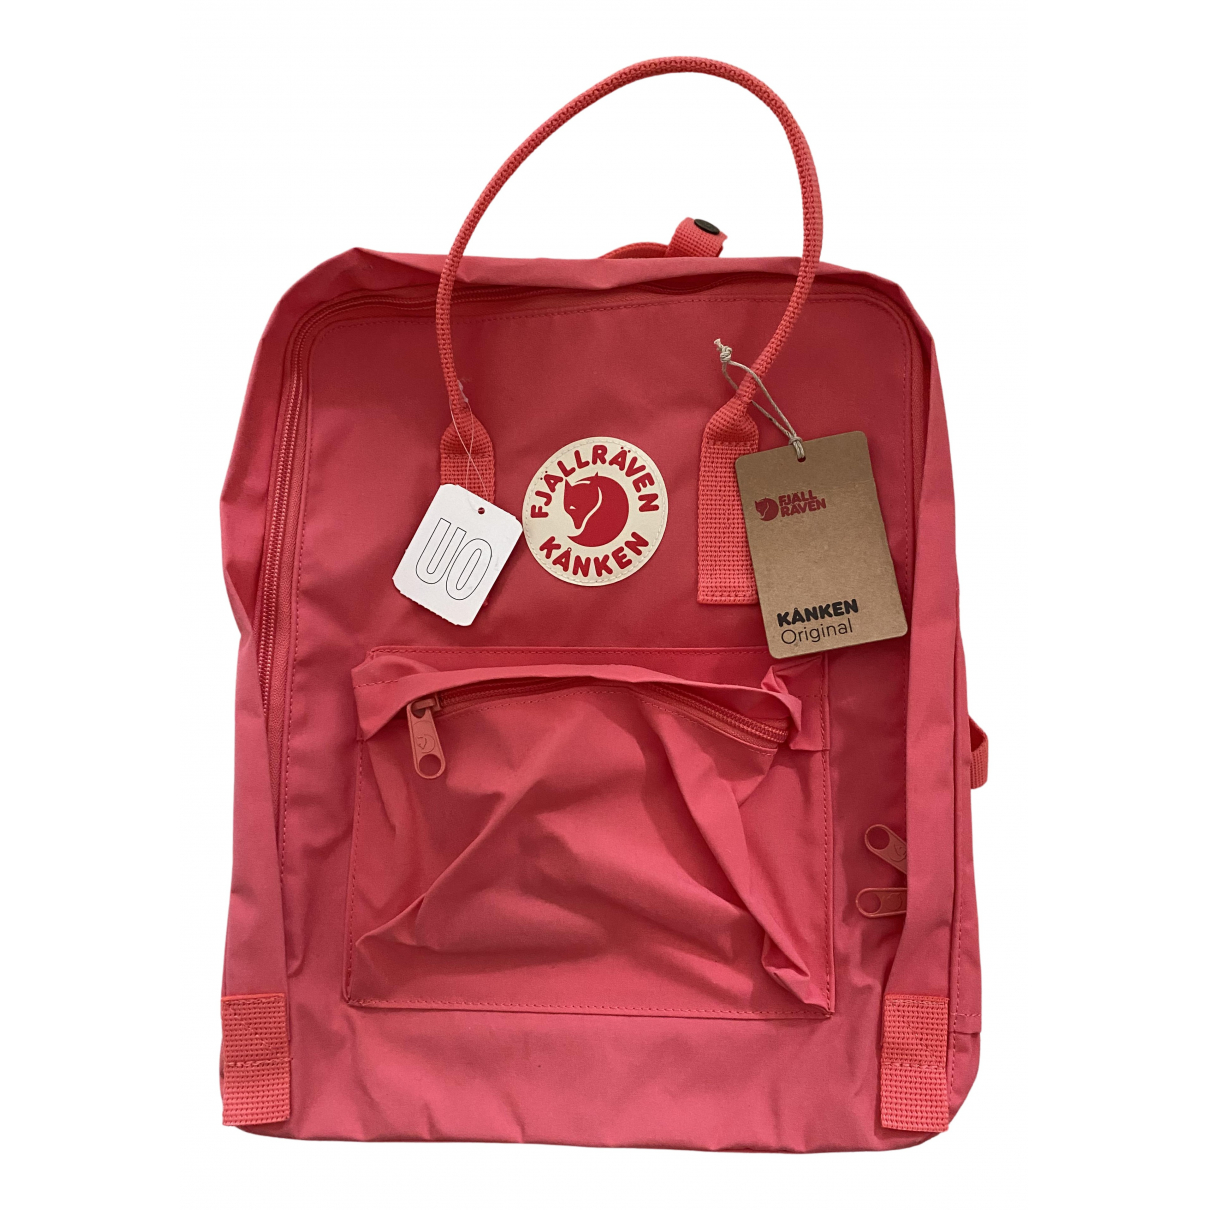 Fjallräven N Pink Cotton backpack for Women N